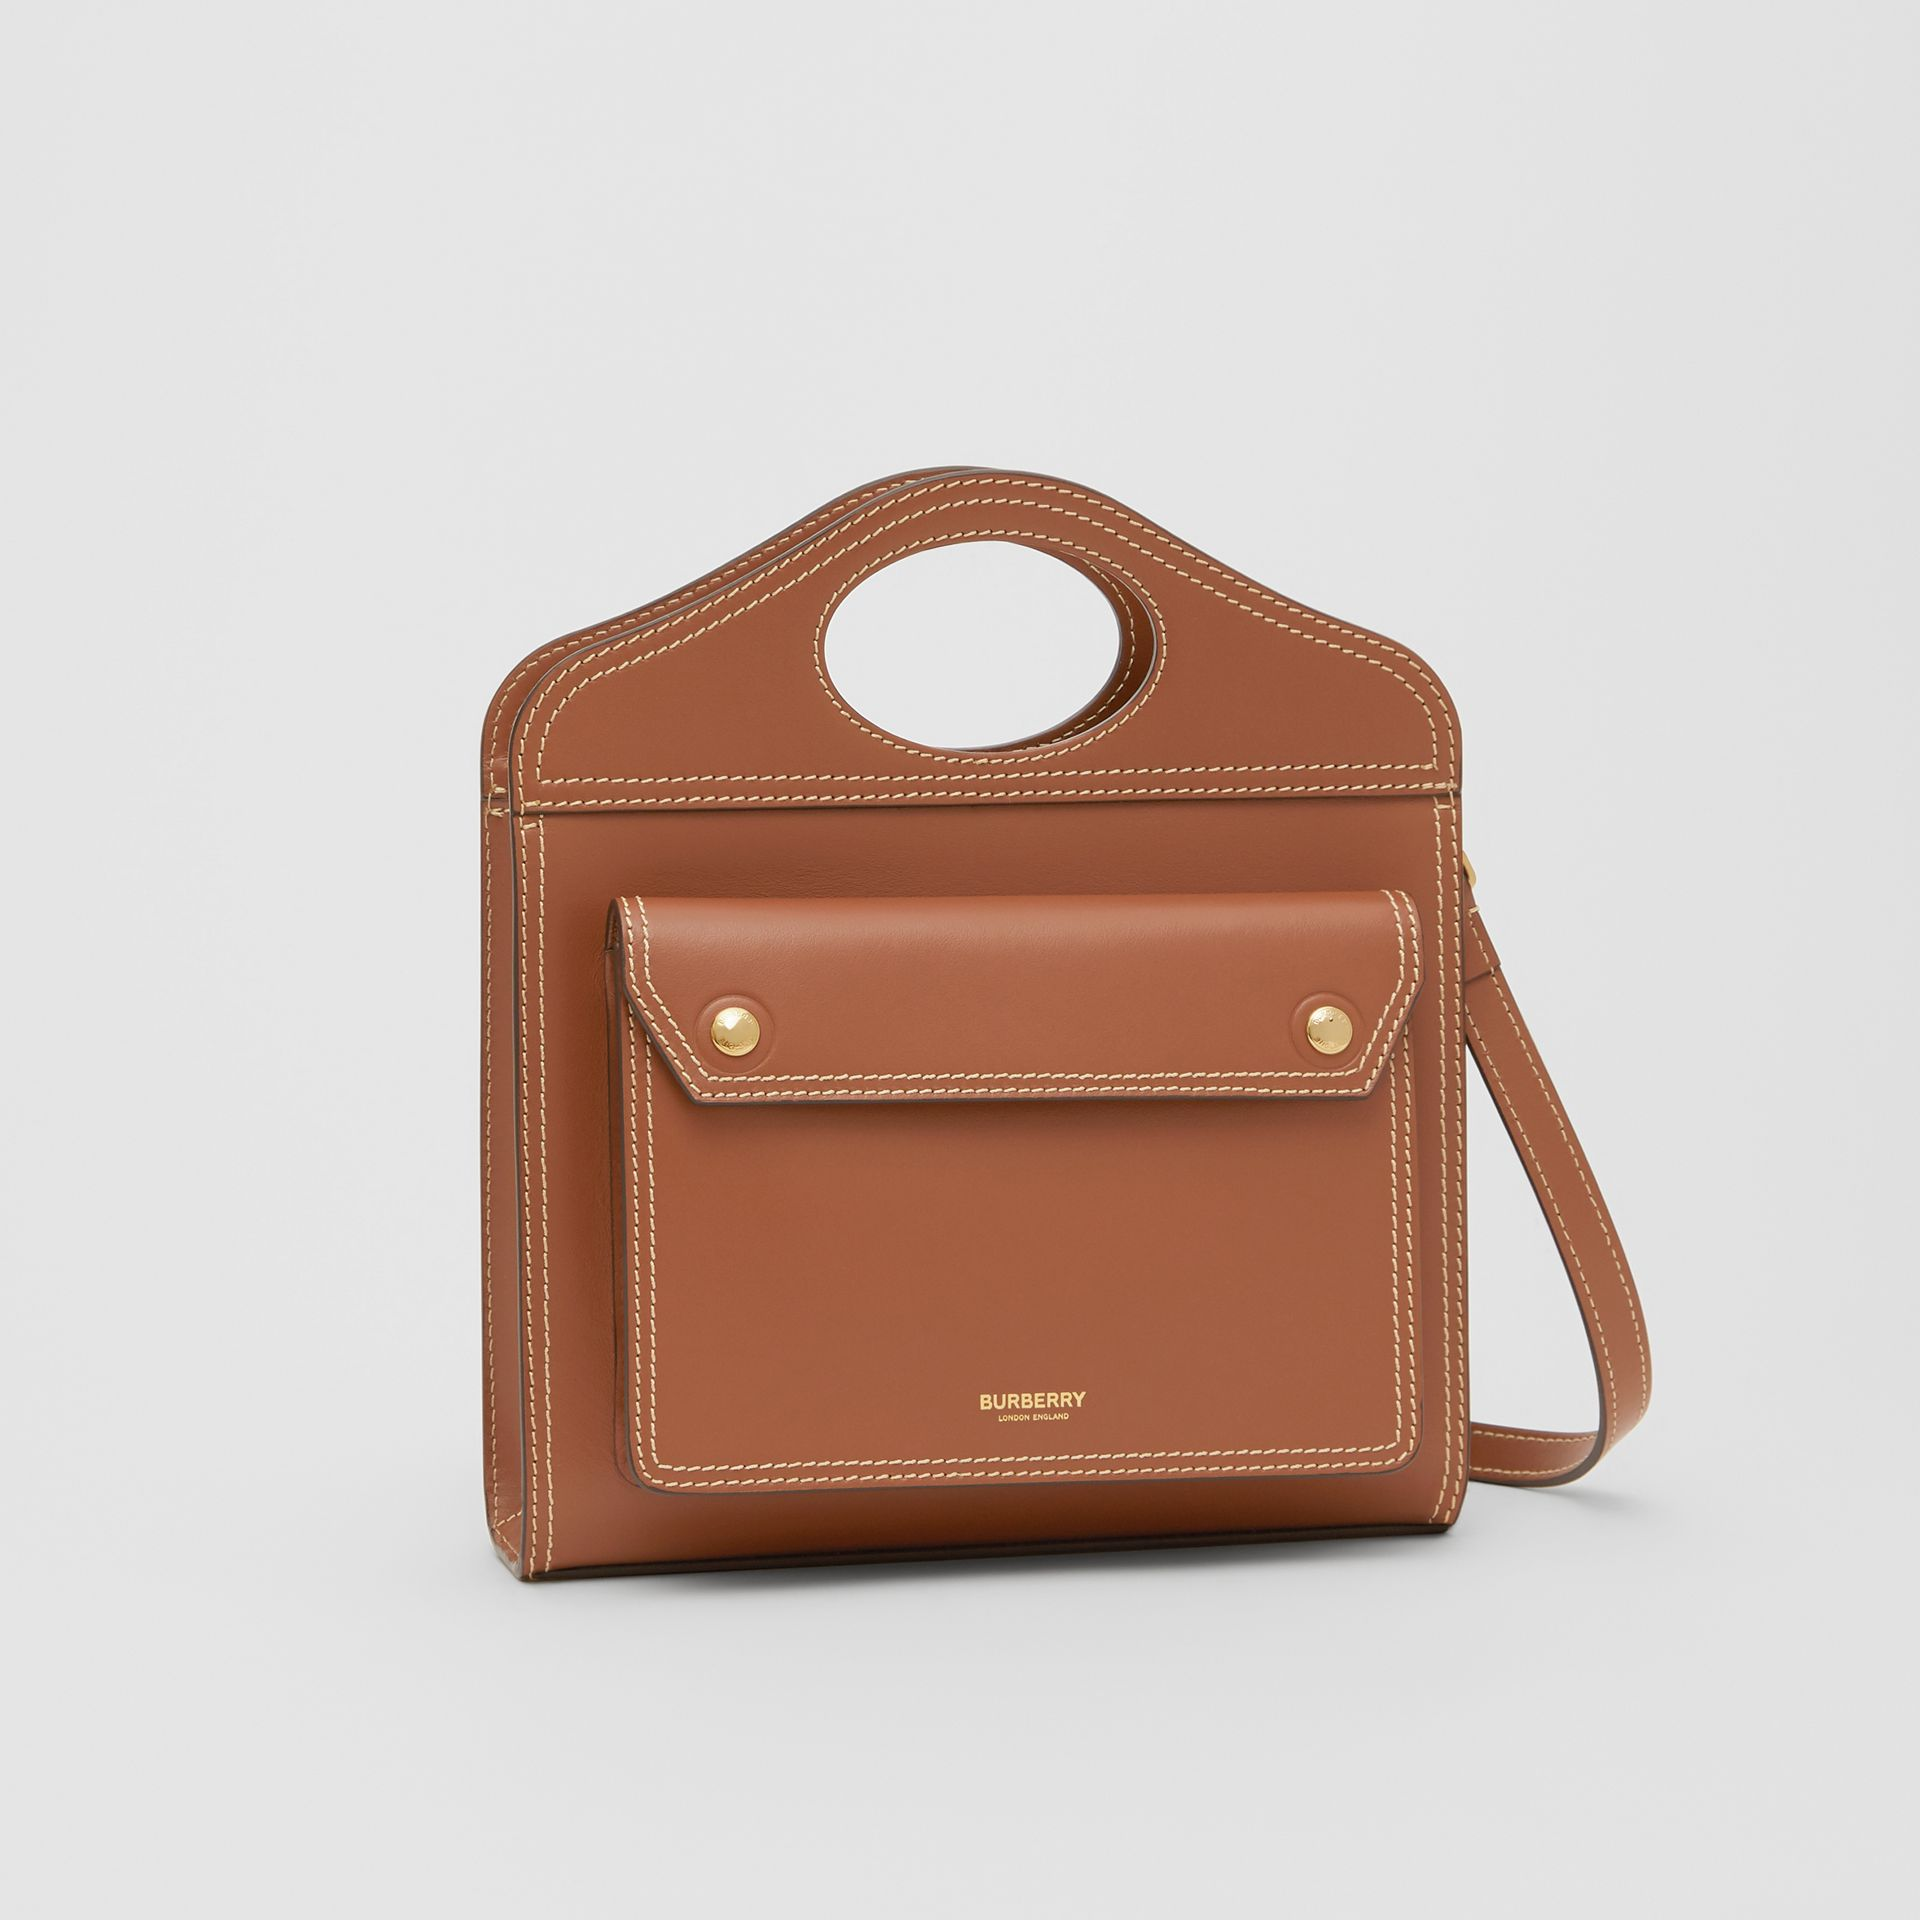 Mini Topstitch Detail Leather Pocket Bag in Malt Brown - Women | Burberry Hong Kong - gallery image 5